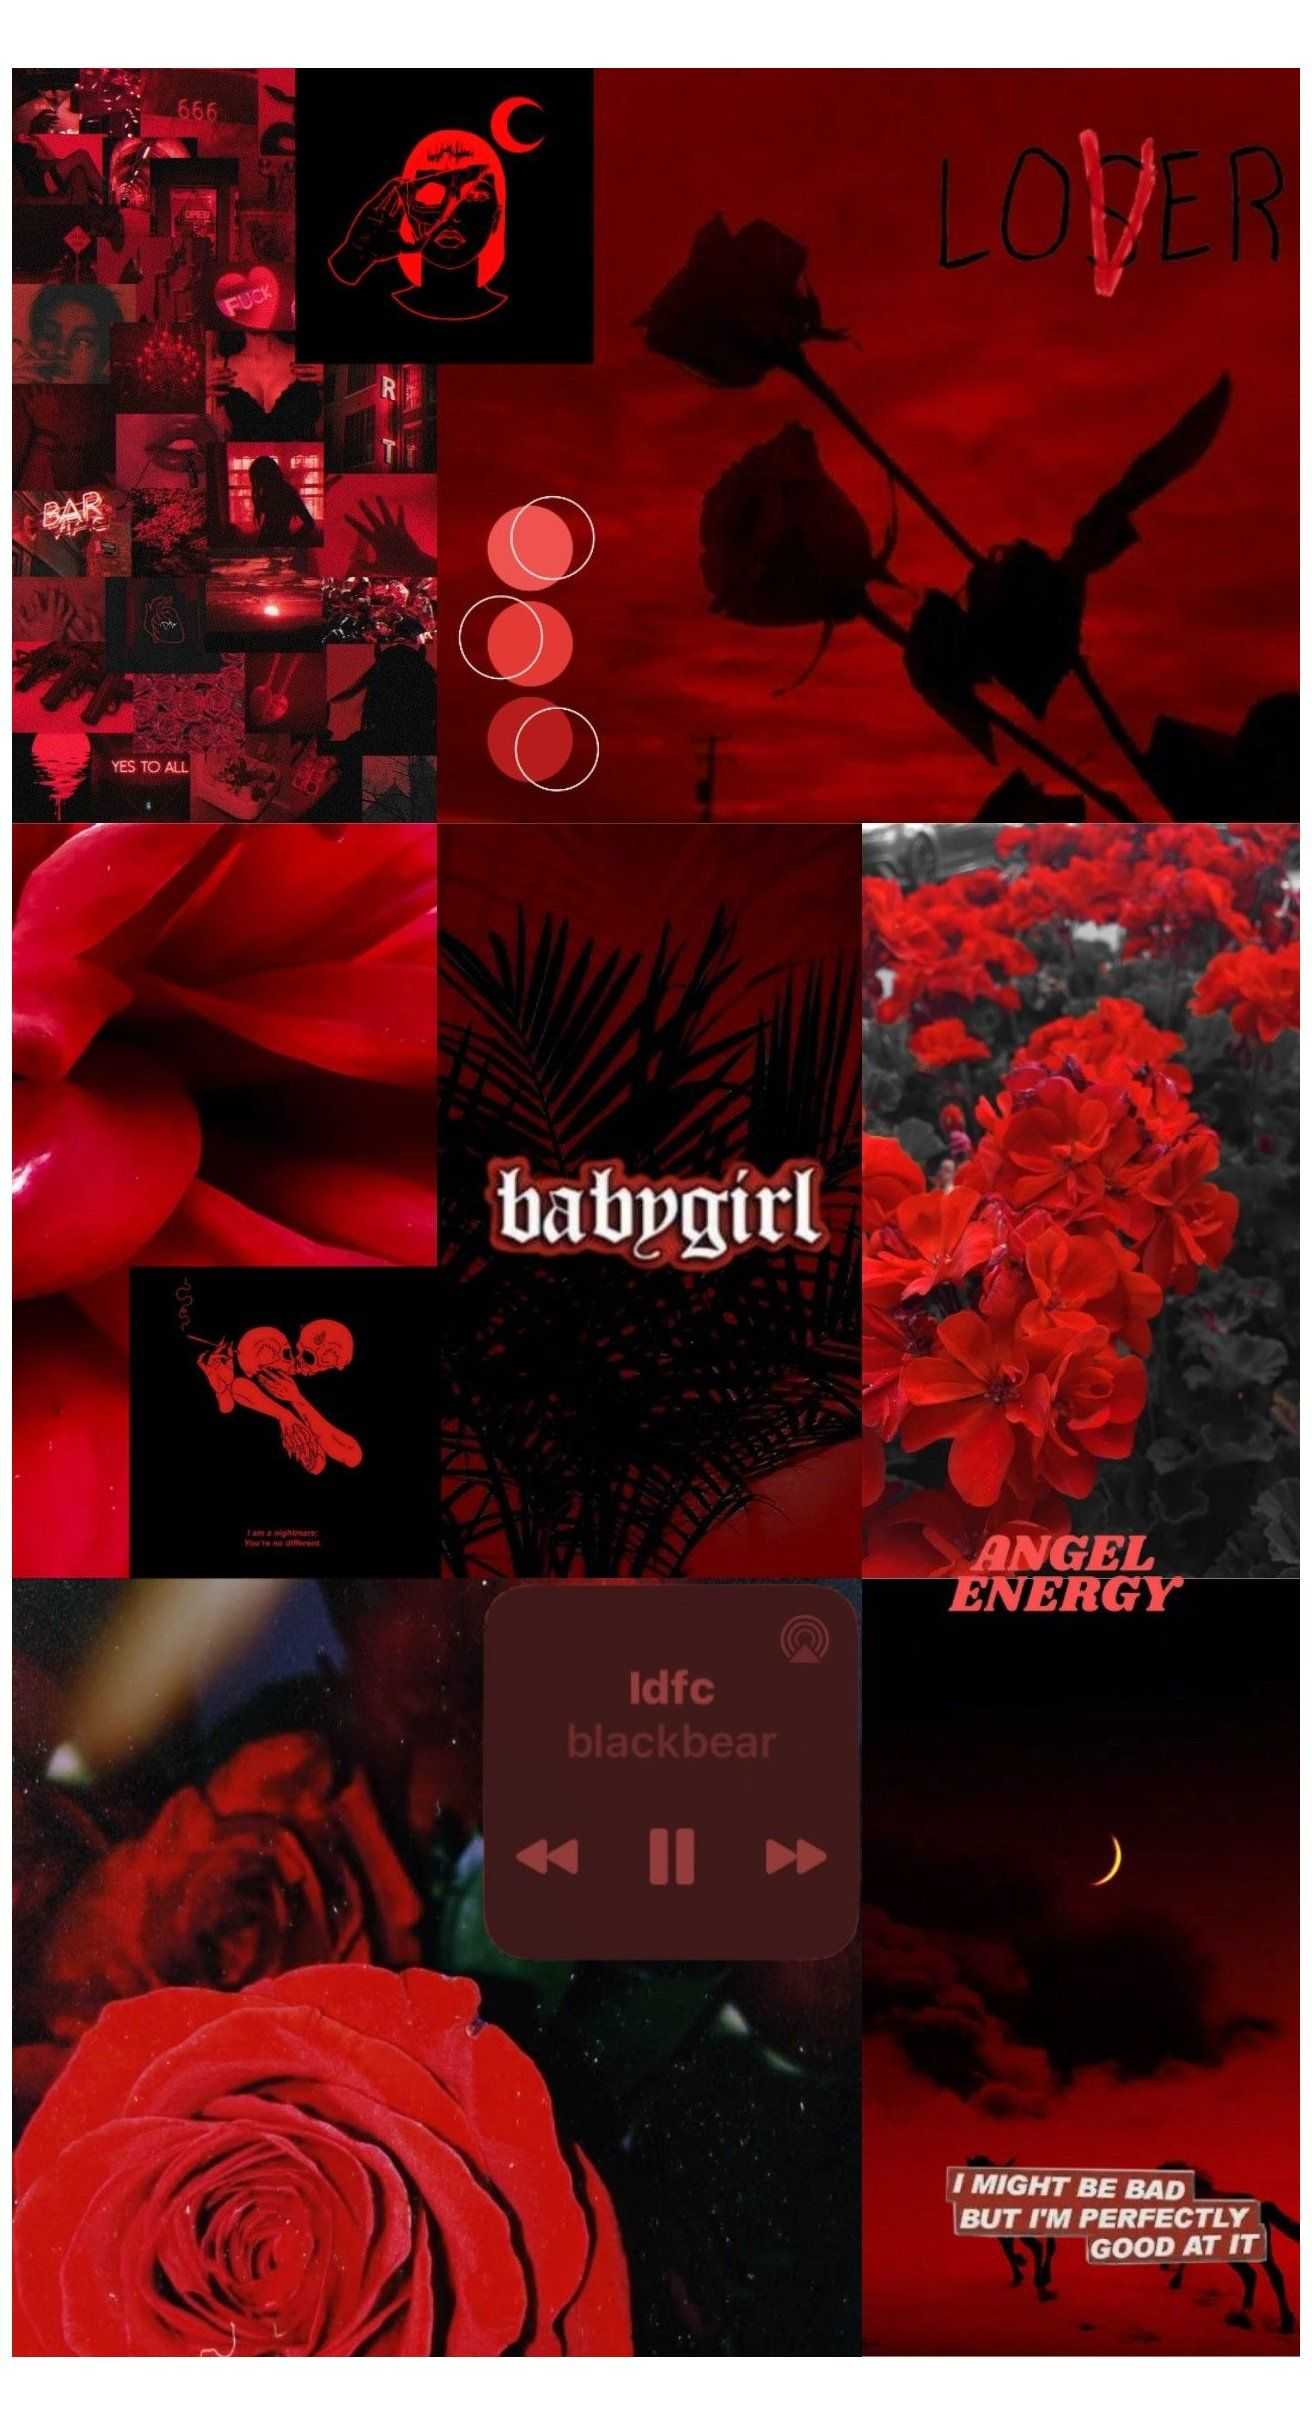 Red And Black Aesthetic Wallpaper Red Aesthetic Wallpaper Redaestheticwal In 2021 Iphone Wallpaper Tumblr Aesthetic Pretty Wallpaper Iphone Red And Black Wallpaper Cute wallpapers aesthetic red